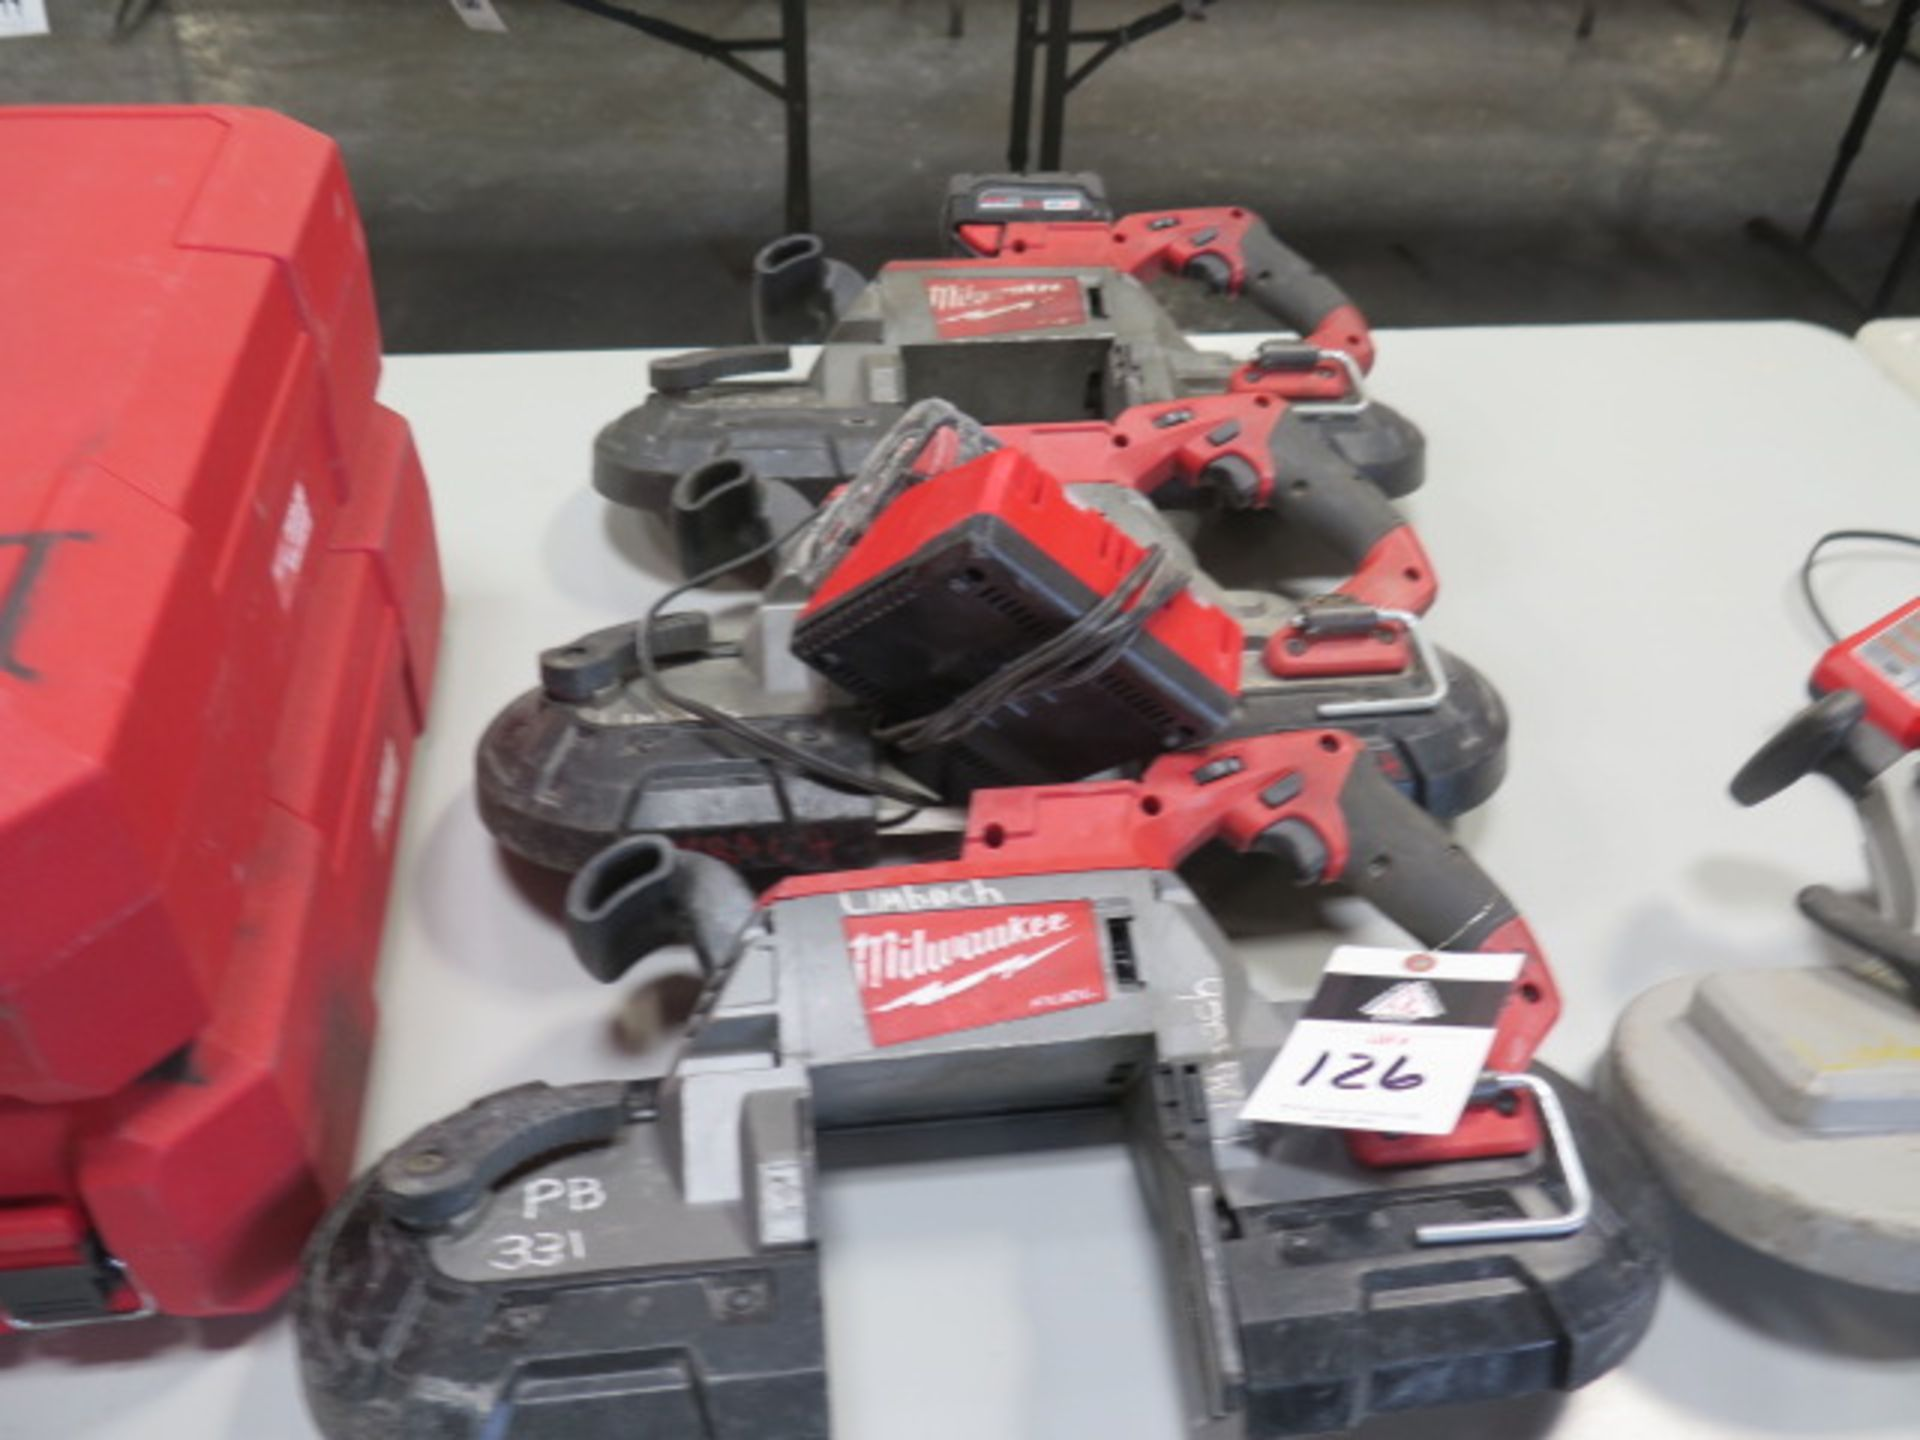 Milwaukee 18 Volt Portable Band Saws (3) (SOLD AS-IS - NO WARRANTY)